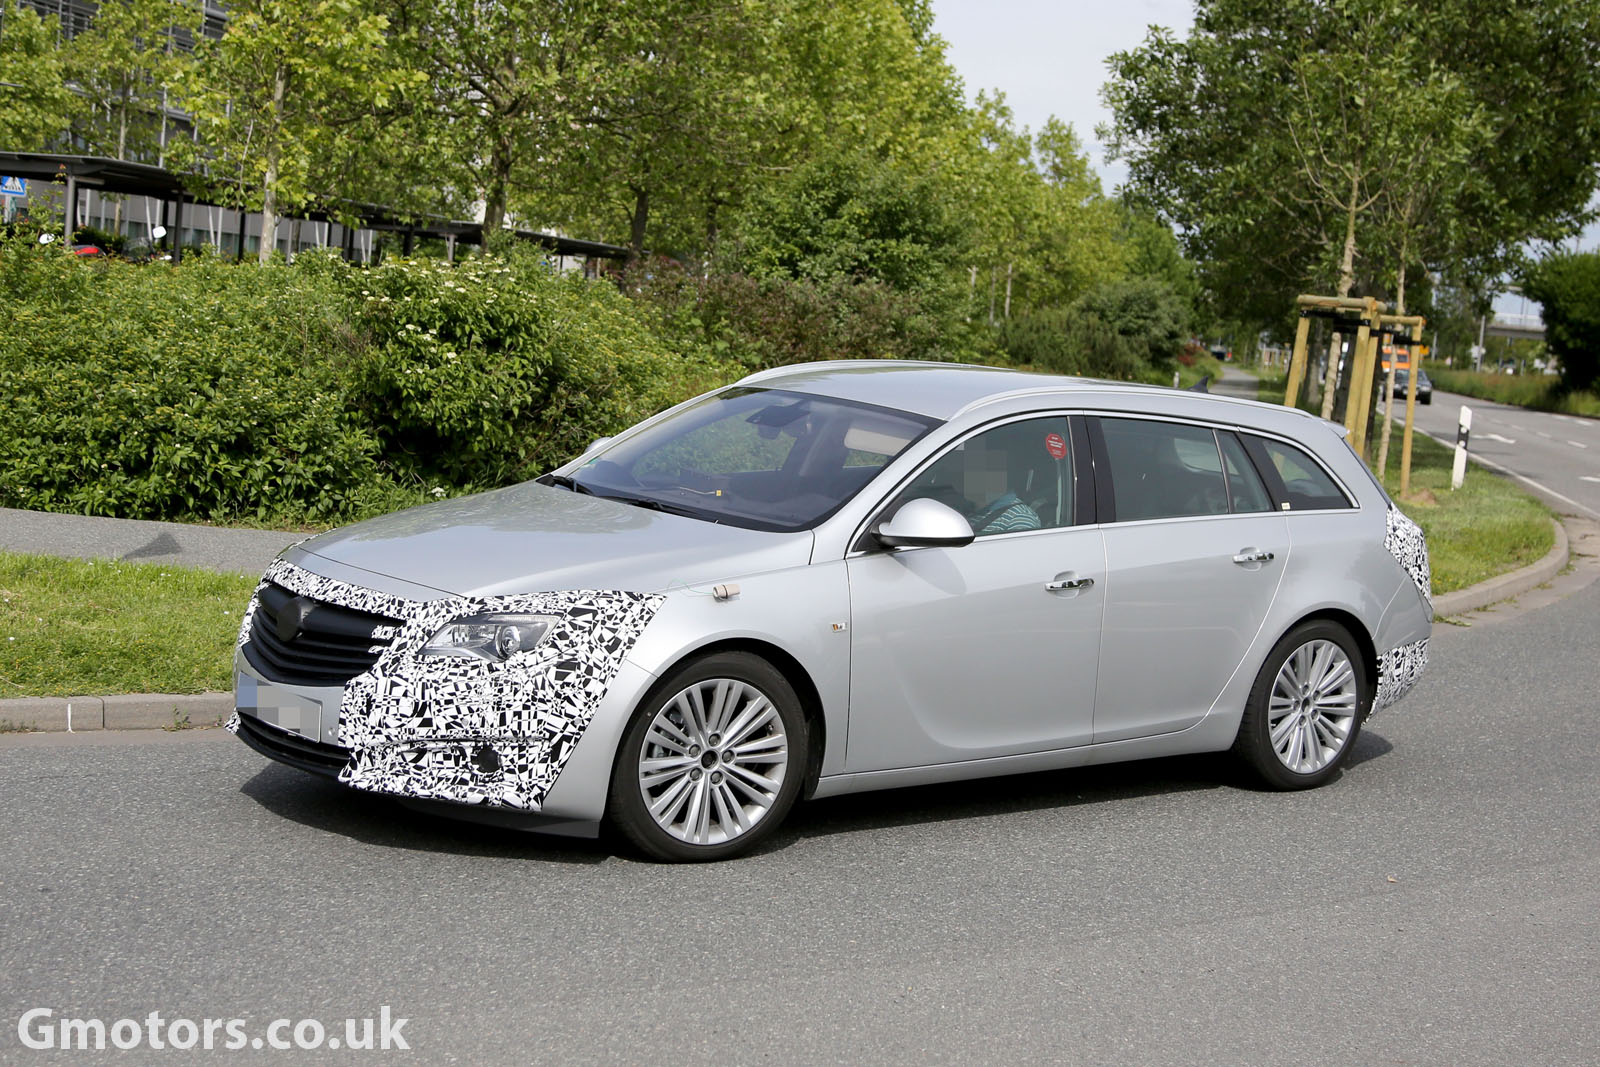 Opel/Vauxhall Insignia Sports Tourer facelift